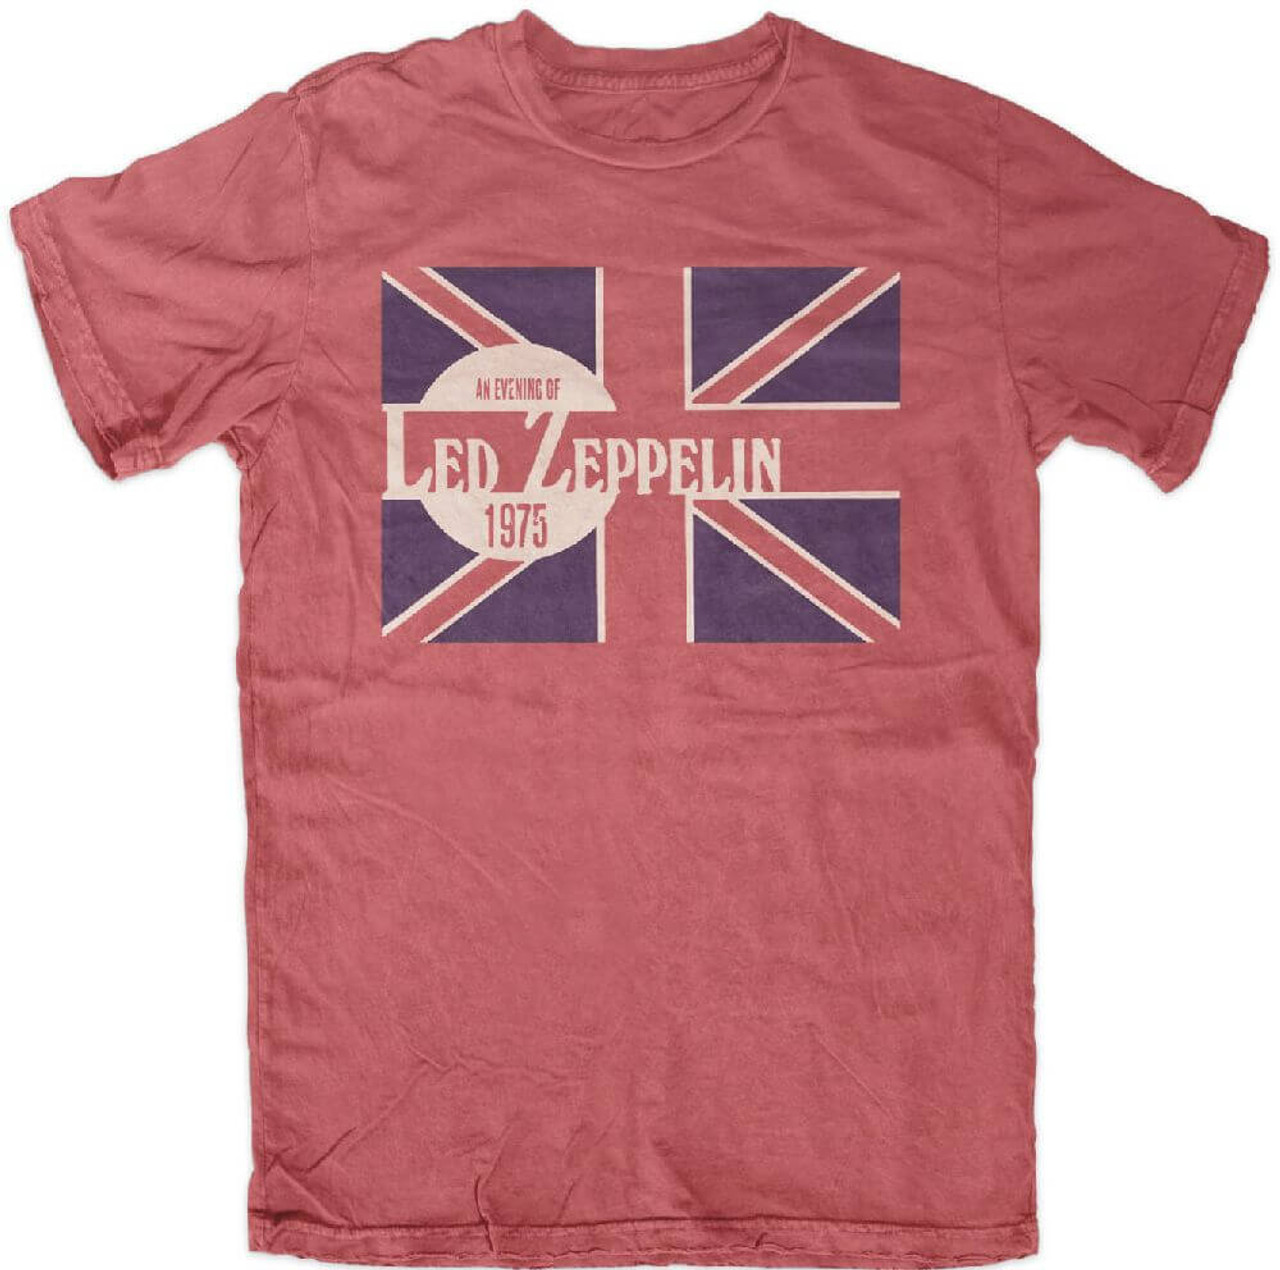 54f7d8cf5f7 Led zeppelin evening of led zeppelin concert tour show performance live  mens red vintage shirt jpg